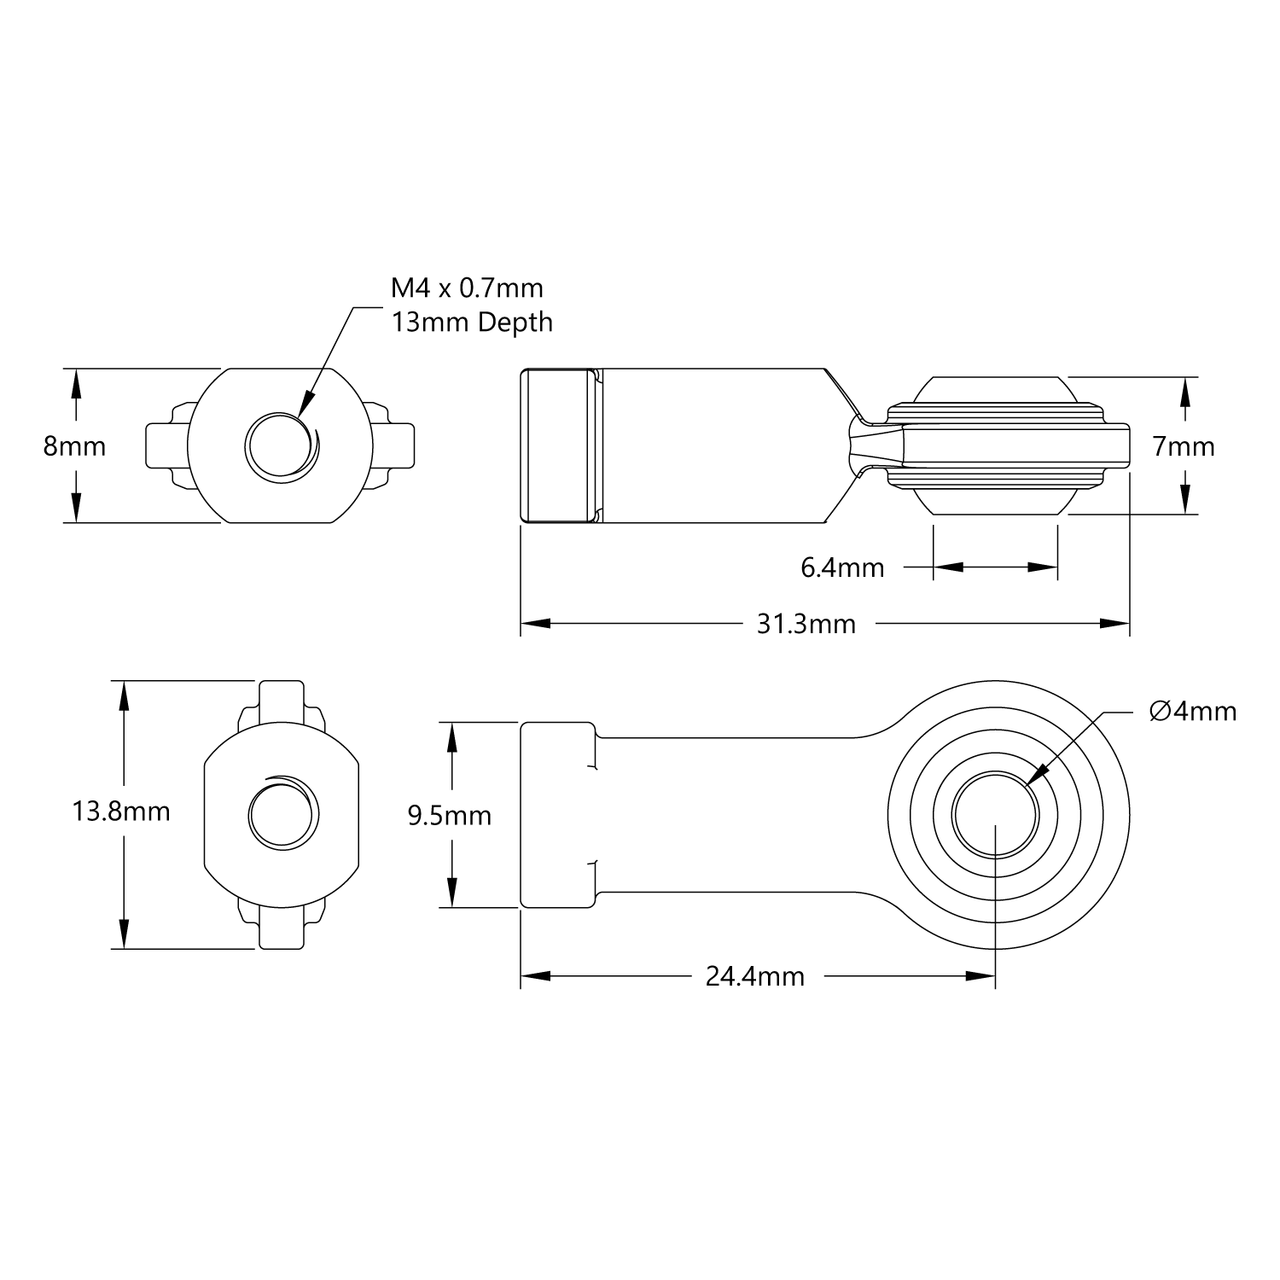 small resolution of  m4 x 0 7 2913 0004 0241 schematic